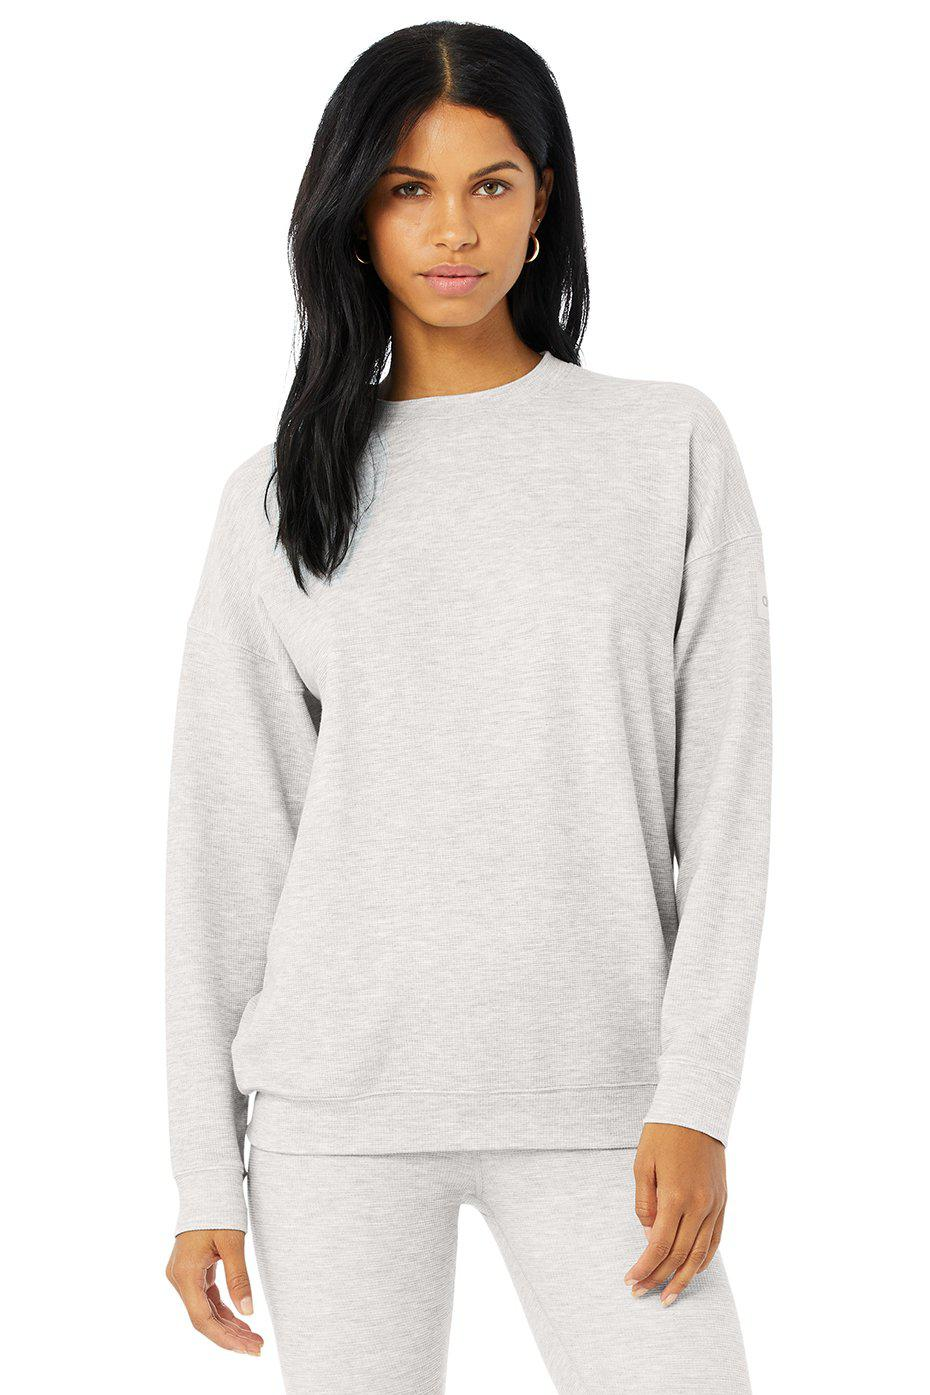 Micro Waffle Relaxation Pullover - Dove Grey Heather 0